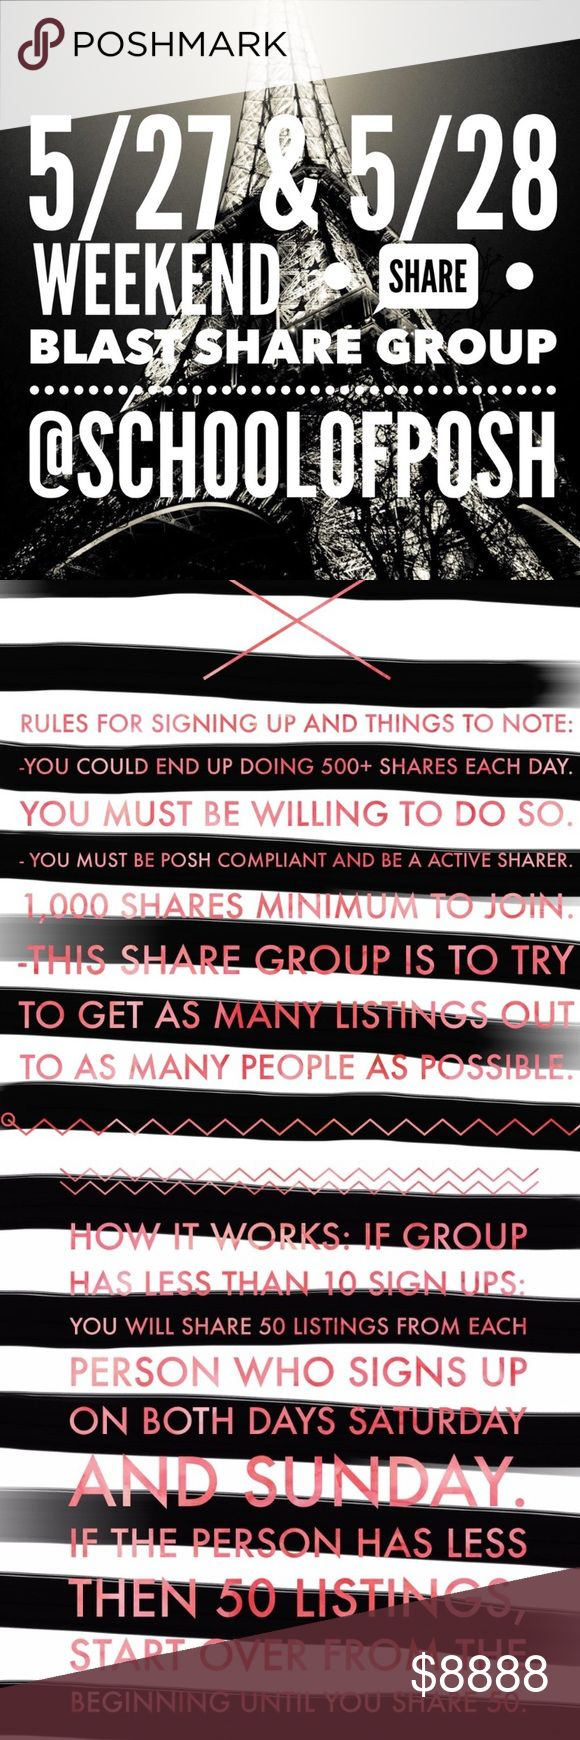 SHARE 50 WEEKEND BLAST- SIGN IN CLOSES AT 10am est Come on over and sign in for the SHARE 50, weekend Blast at the @schoolofposh! I will be guest hosting today! HURRY ON OVER, as sign in closed at 10:00 am eastern time!  READ INSTRUCTIONS ABOVE! This is a SUPER FUN GROUP! Don't sign in here. Follow the tag in the comment section to @schoolofposh!  SEE ya soon! @schoolofposh Bags